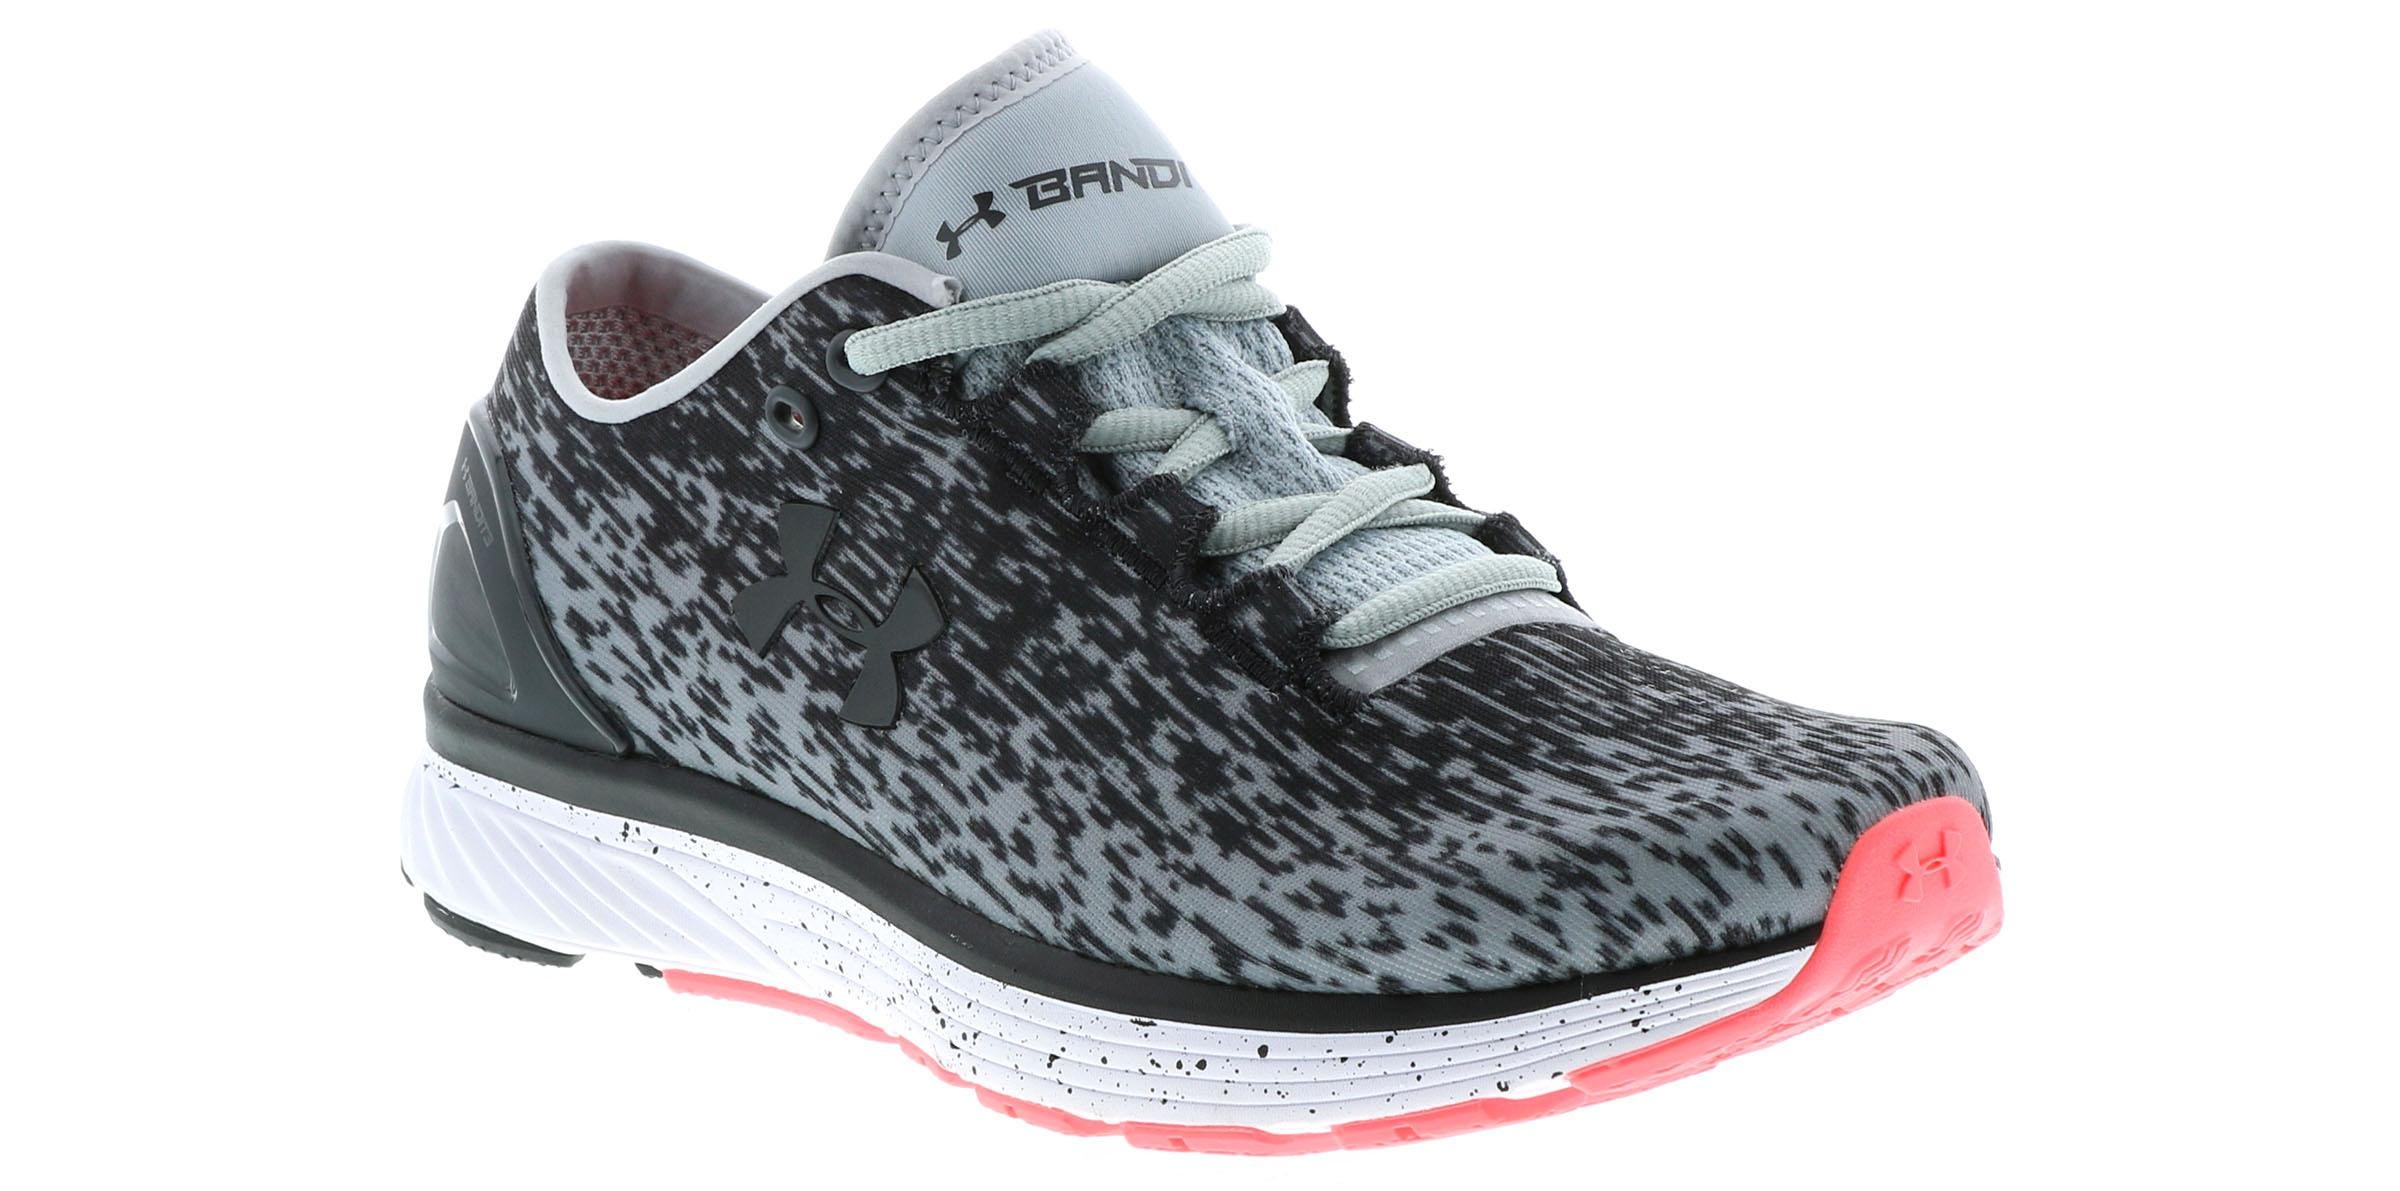 5c37c5fb Women's Under Armour Charged Bandit 3